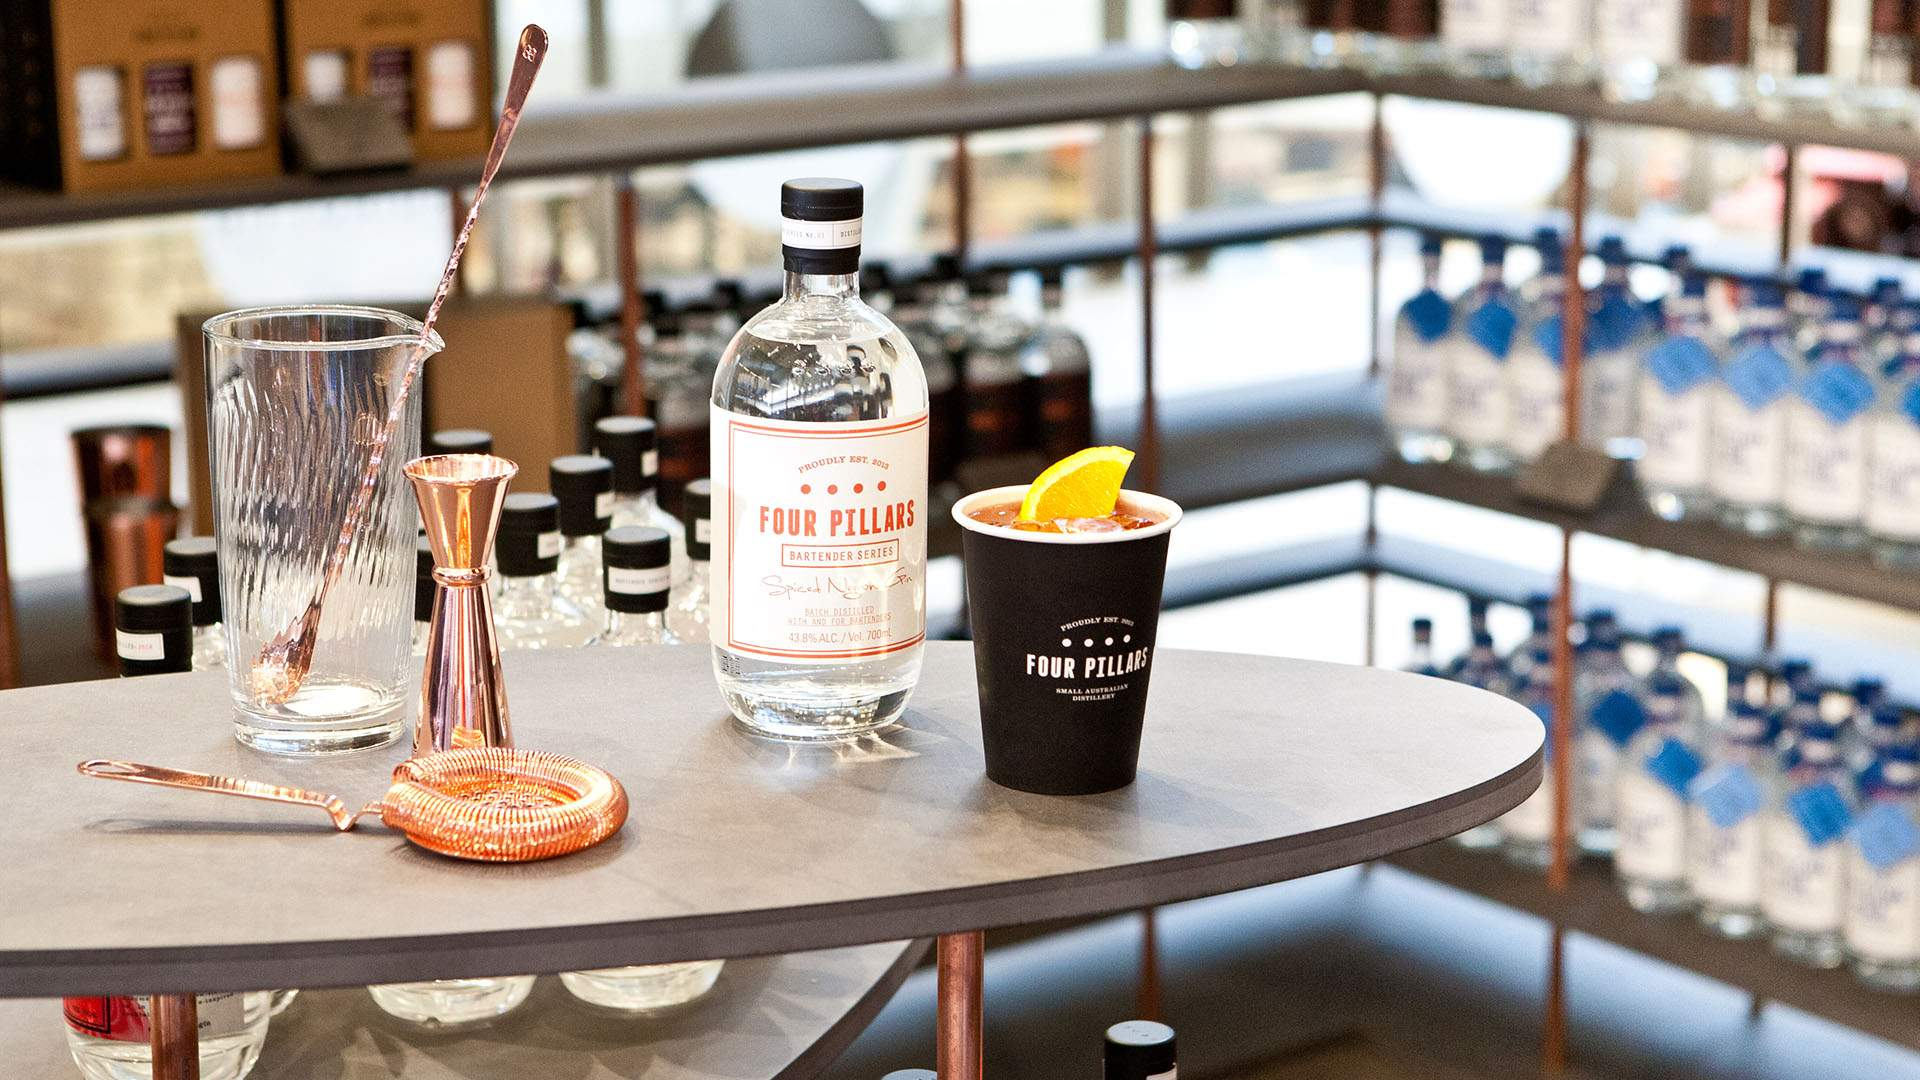 Four Pillars Myer Pop-Up Gin Store